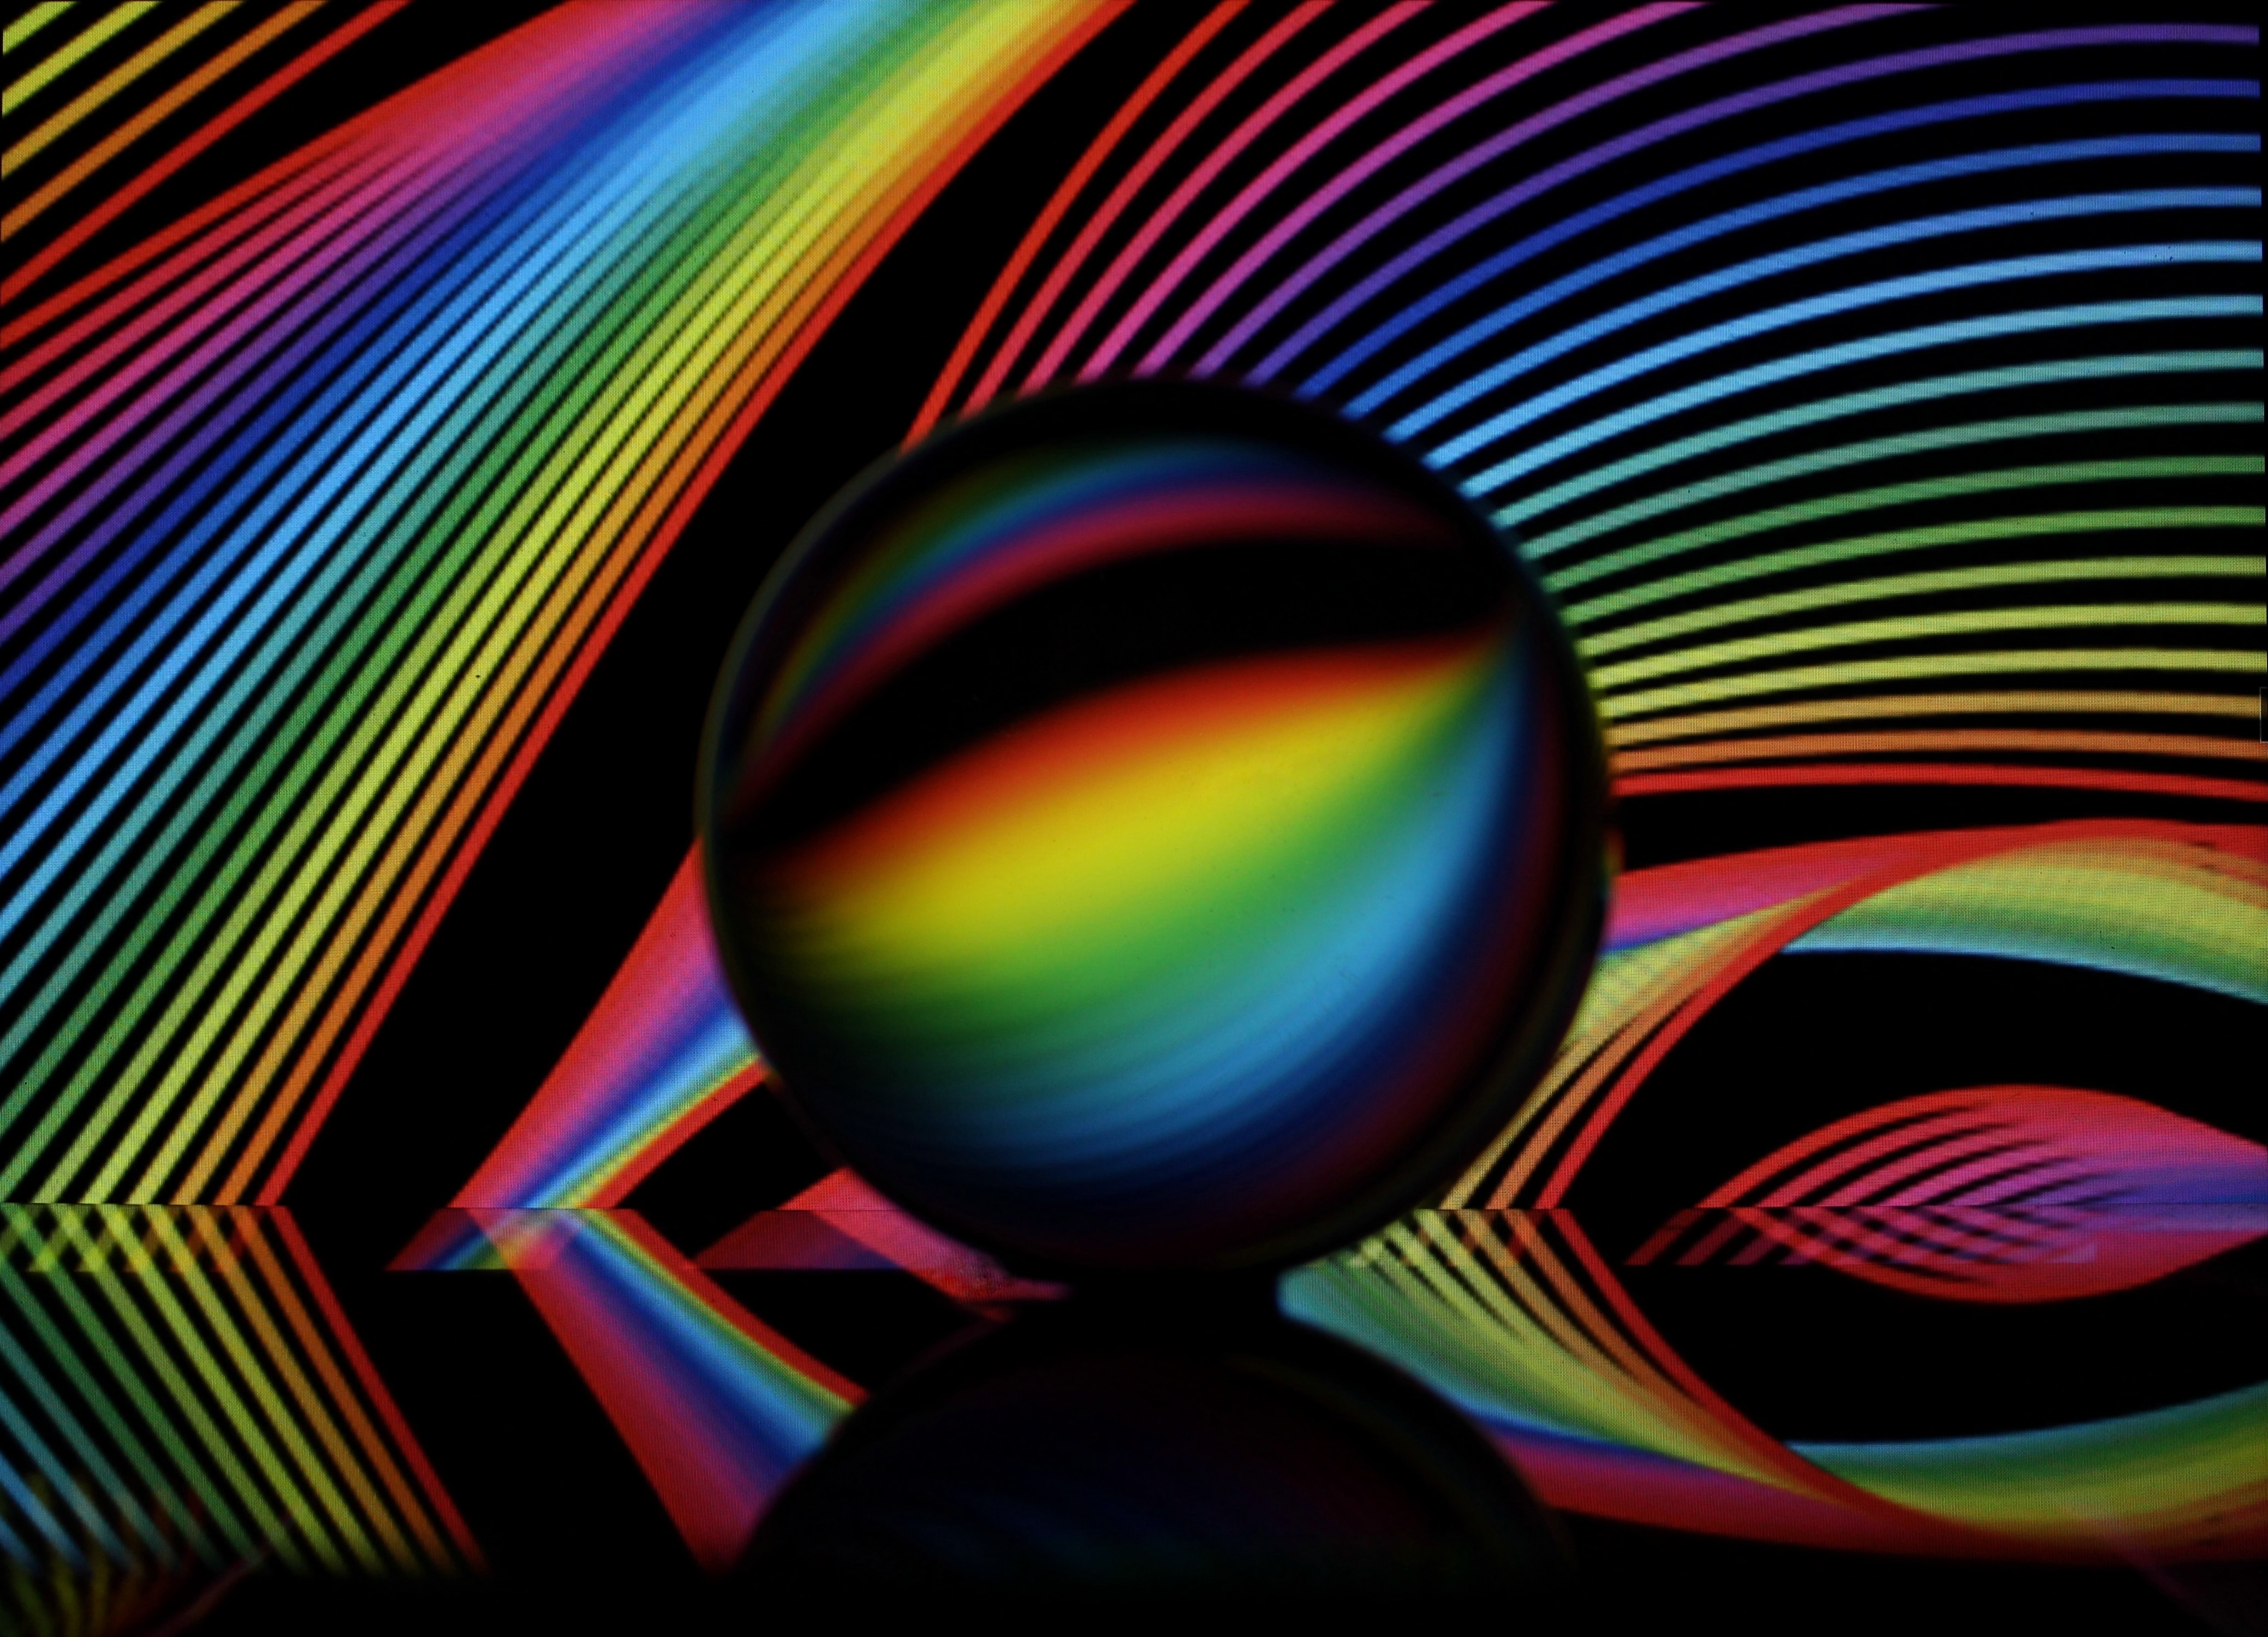 107435 download wallpaper Miscellanea, Miscellaneous, Crystal Ball, Ball, Neon, Lines, Multicolored, Motley screensavers and pictures for free